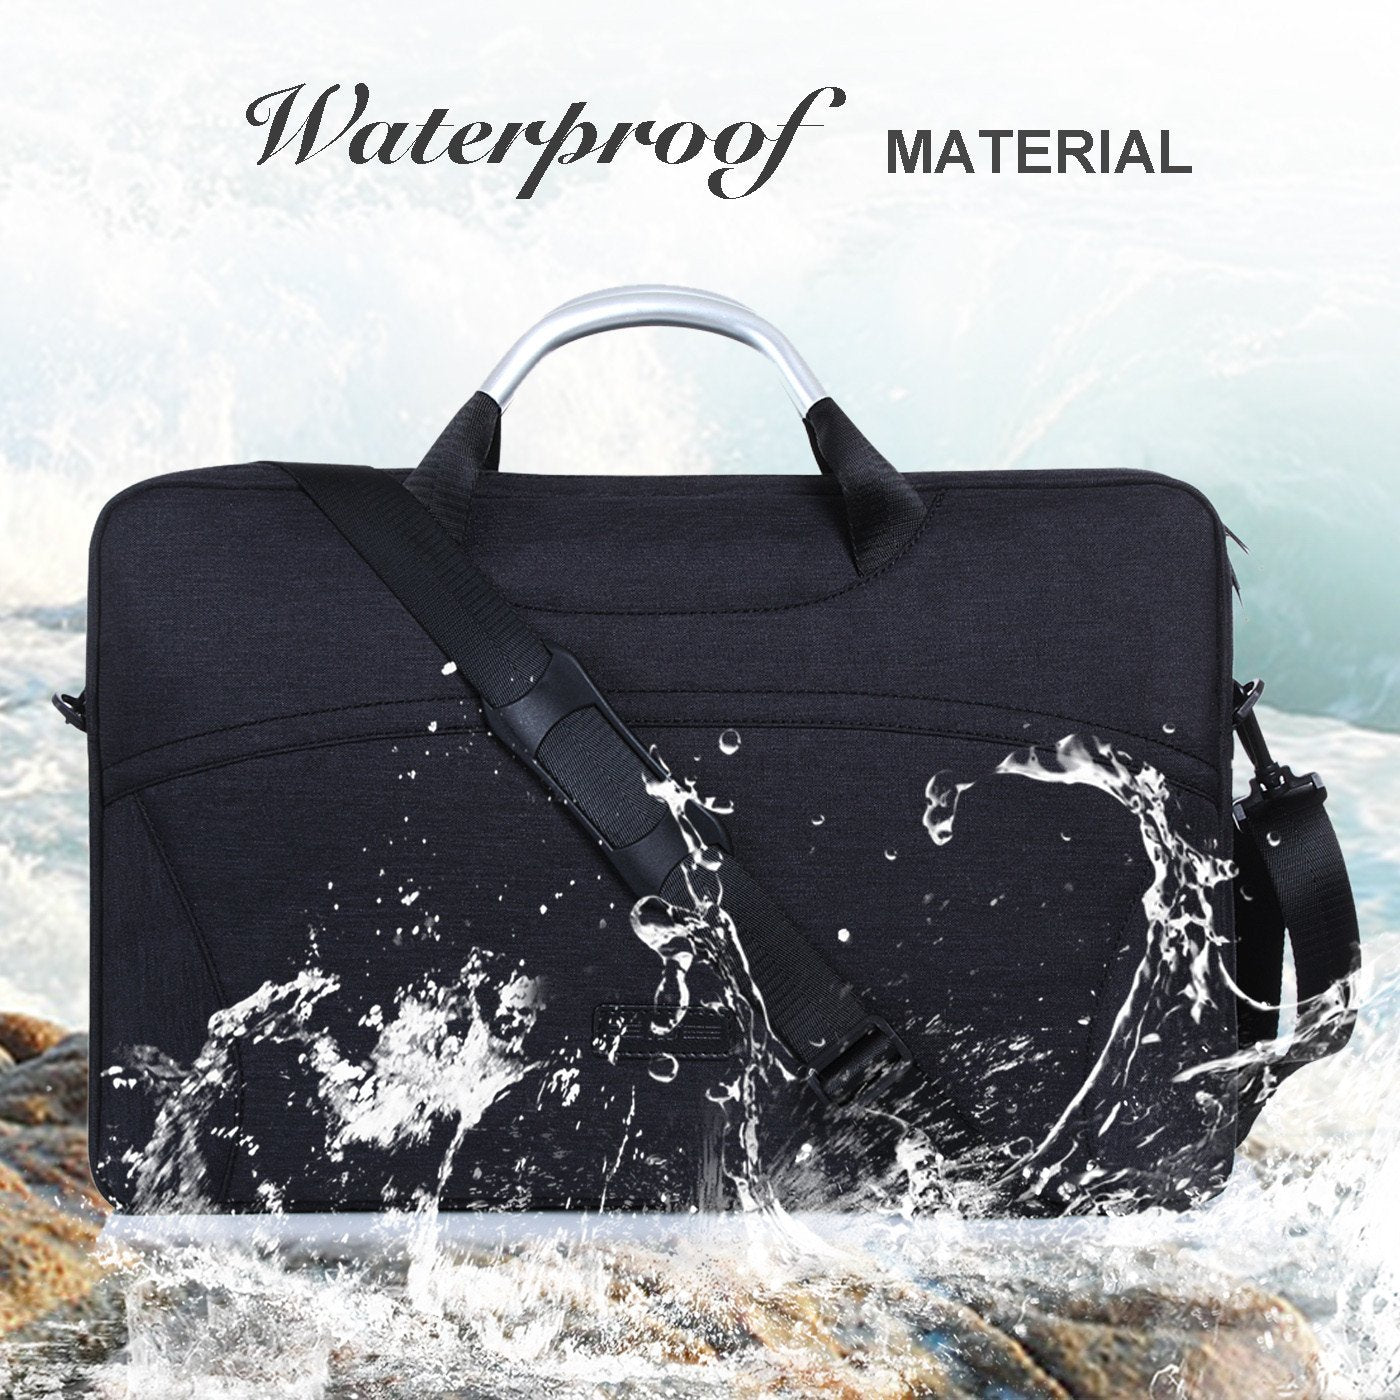 Waterproof Canvas Bag for Galaxy View 18.4""